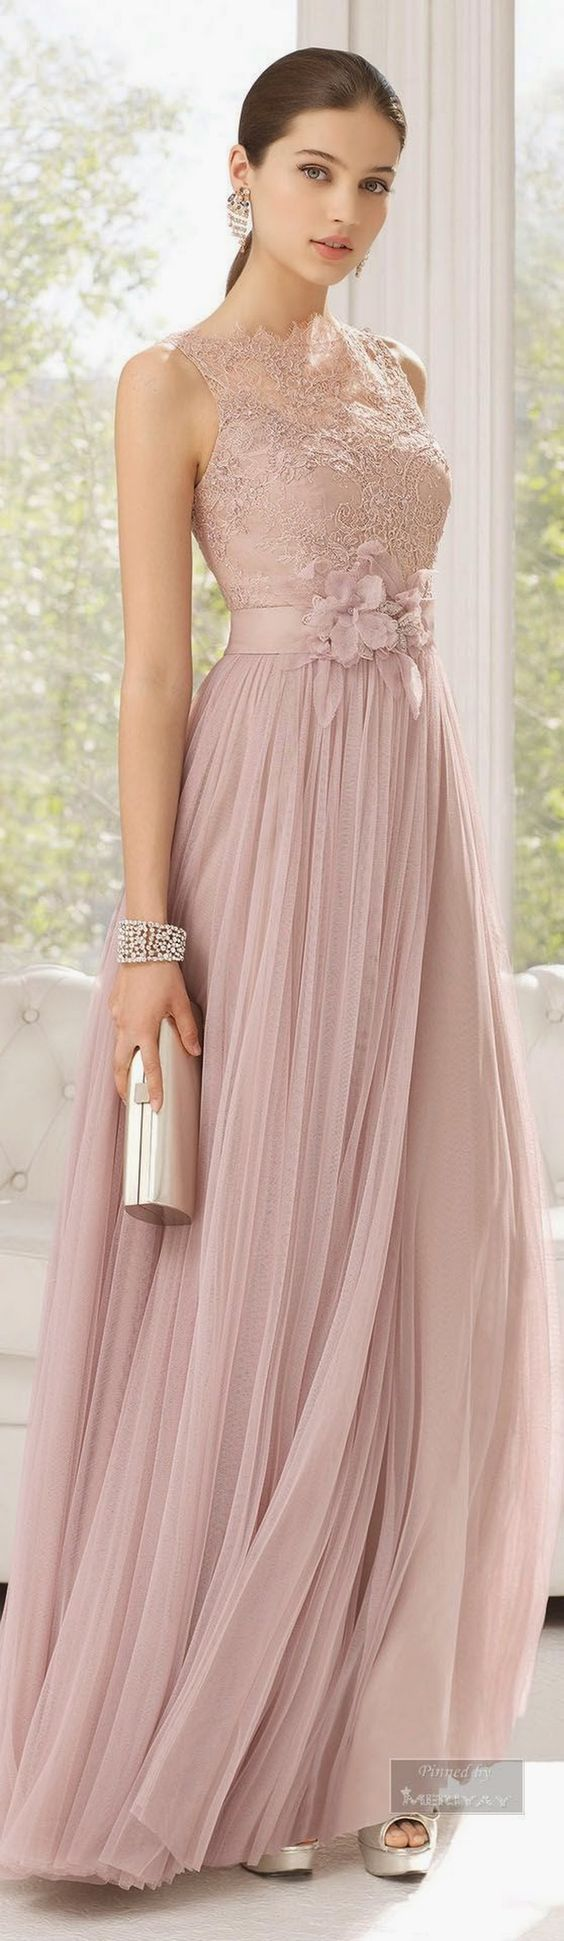 24 best Vestidos fashion images on Pinterest | Classy dress, Outfit ...